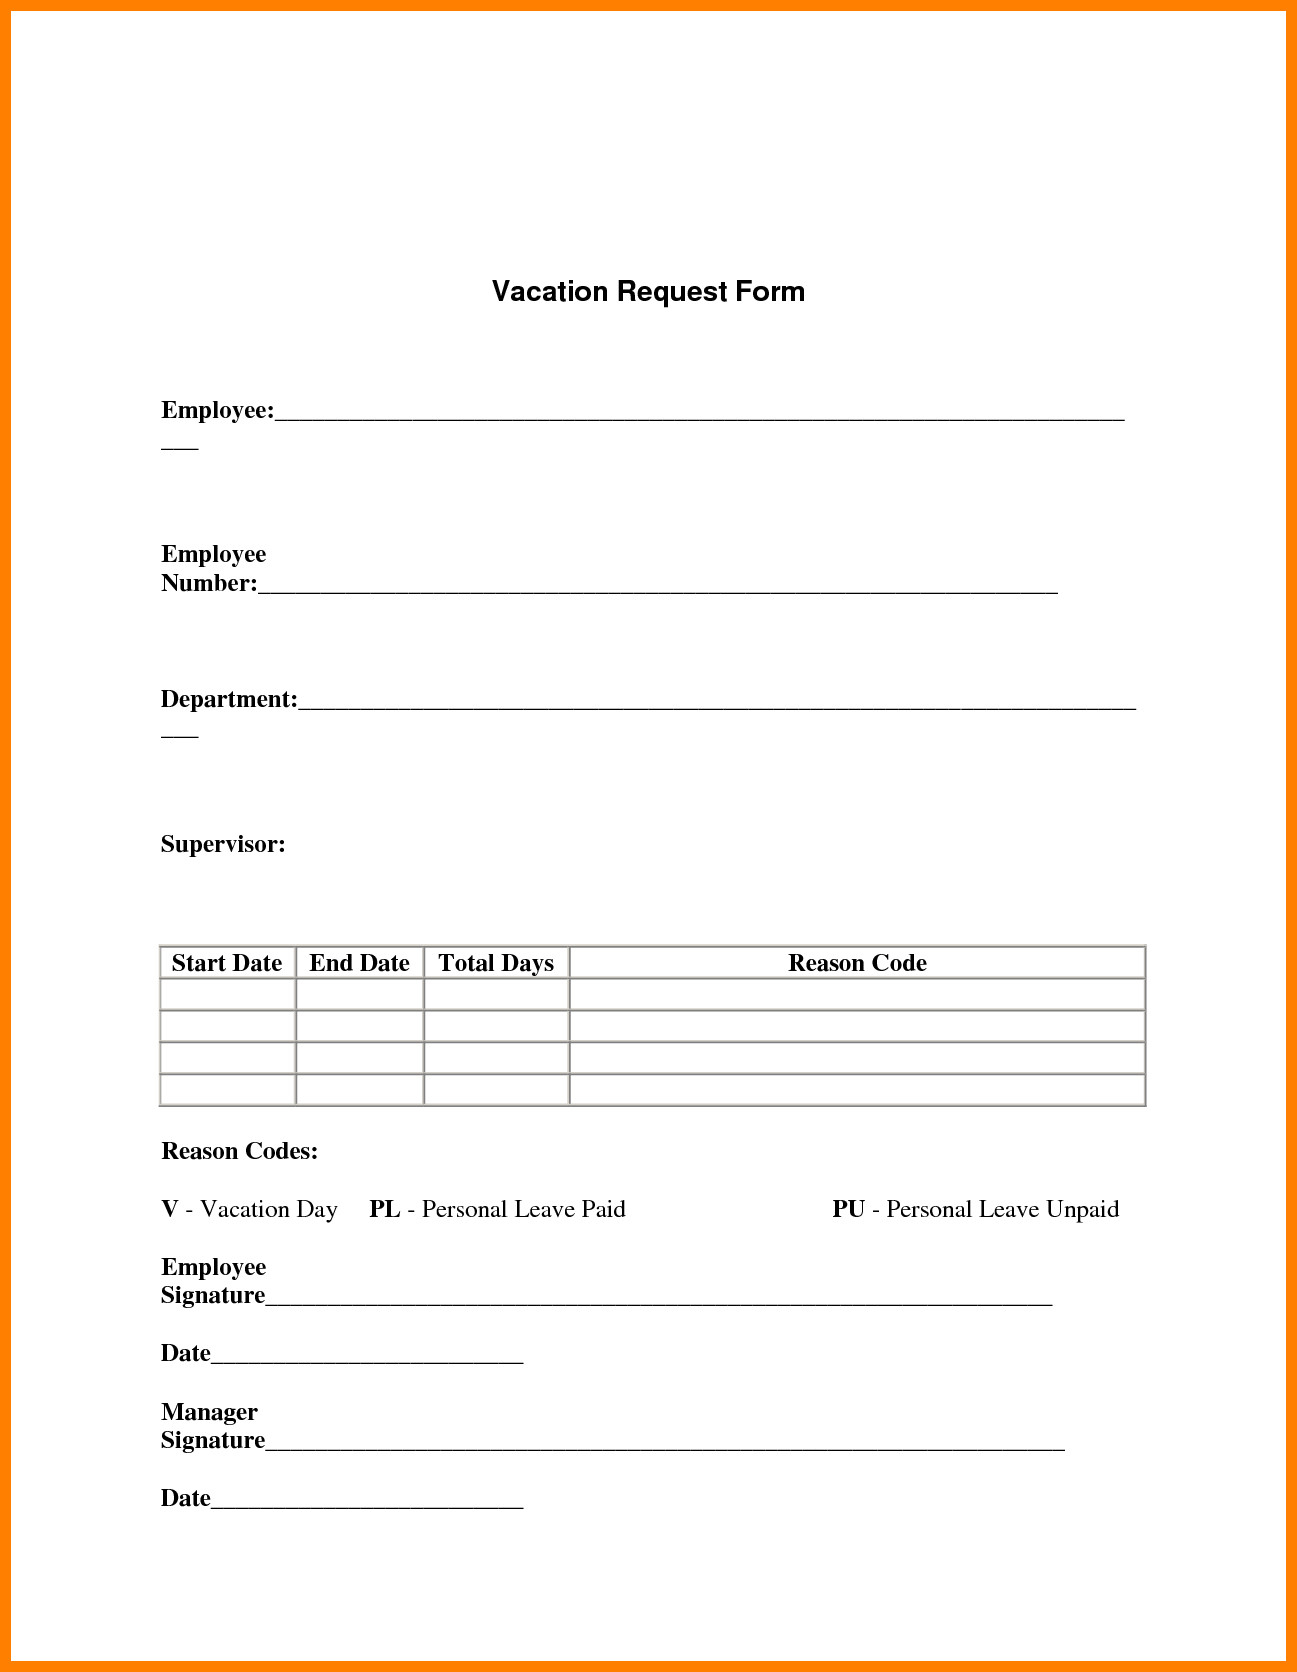 Travel Request Form Template Word - Atlantaauctionco Throughout Travel Request Form Template Word